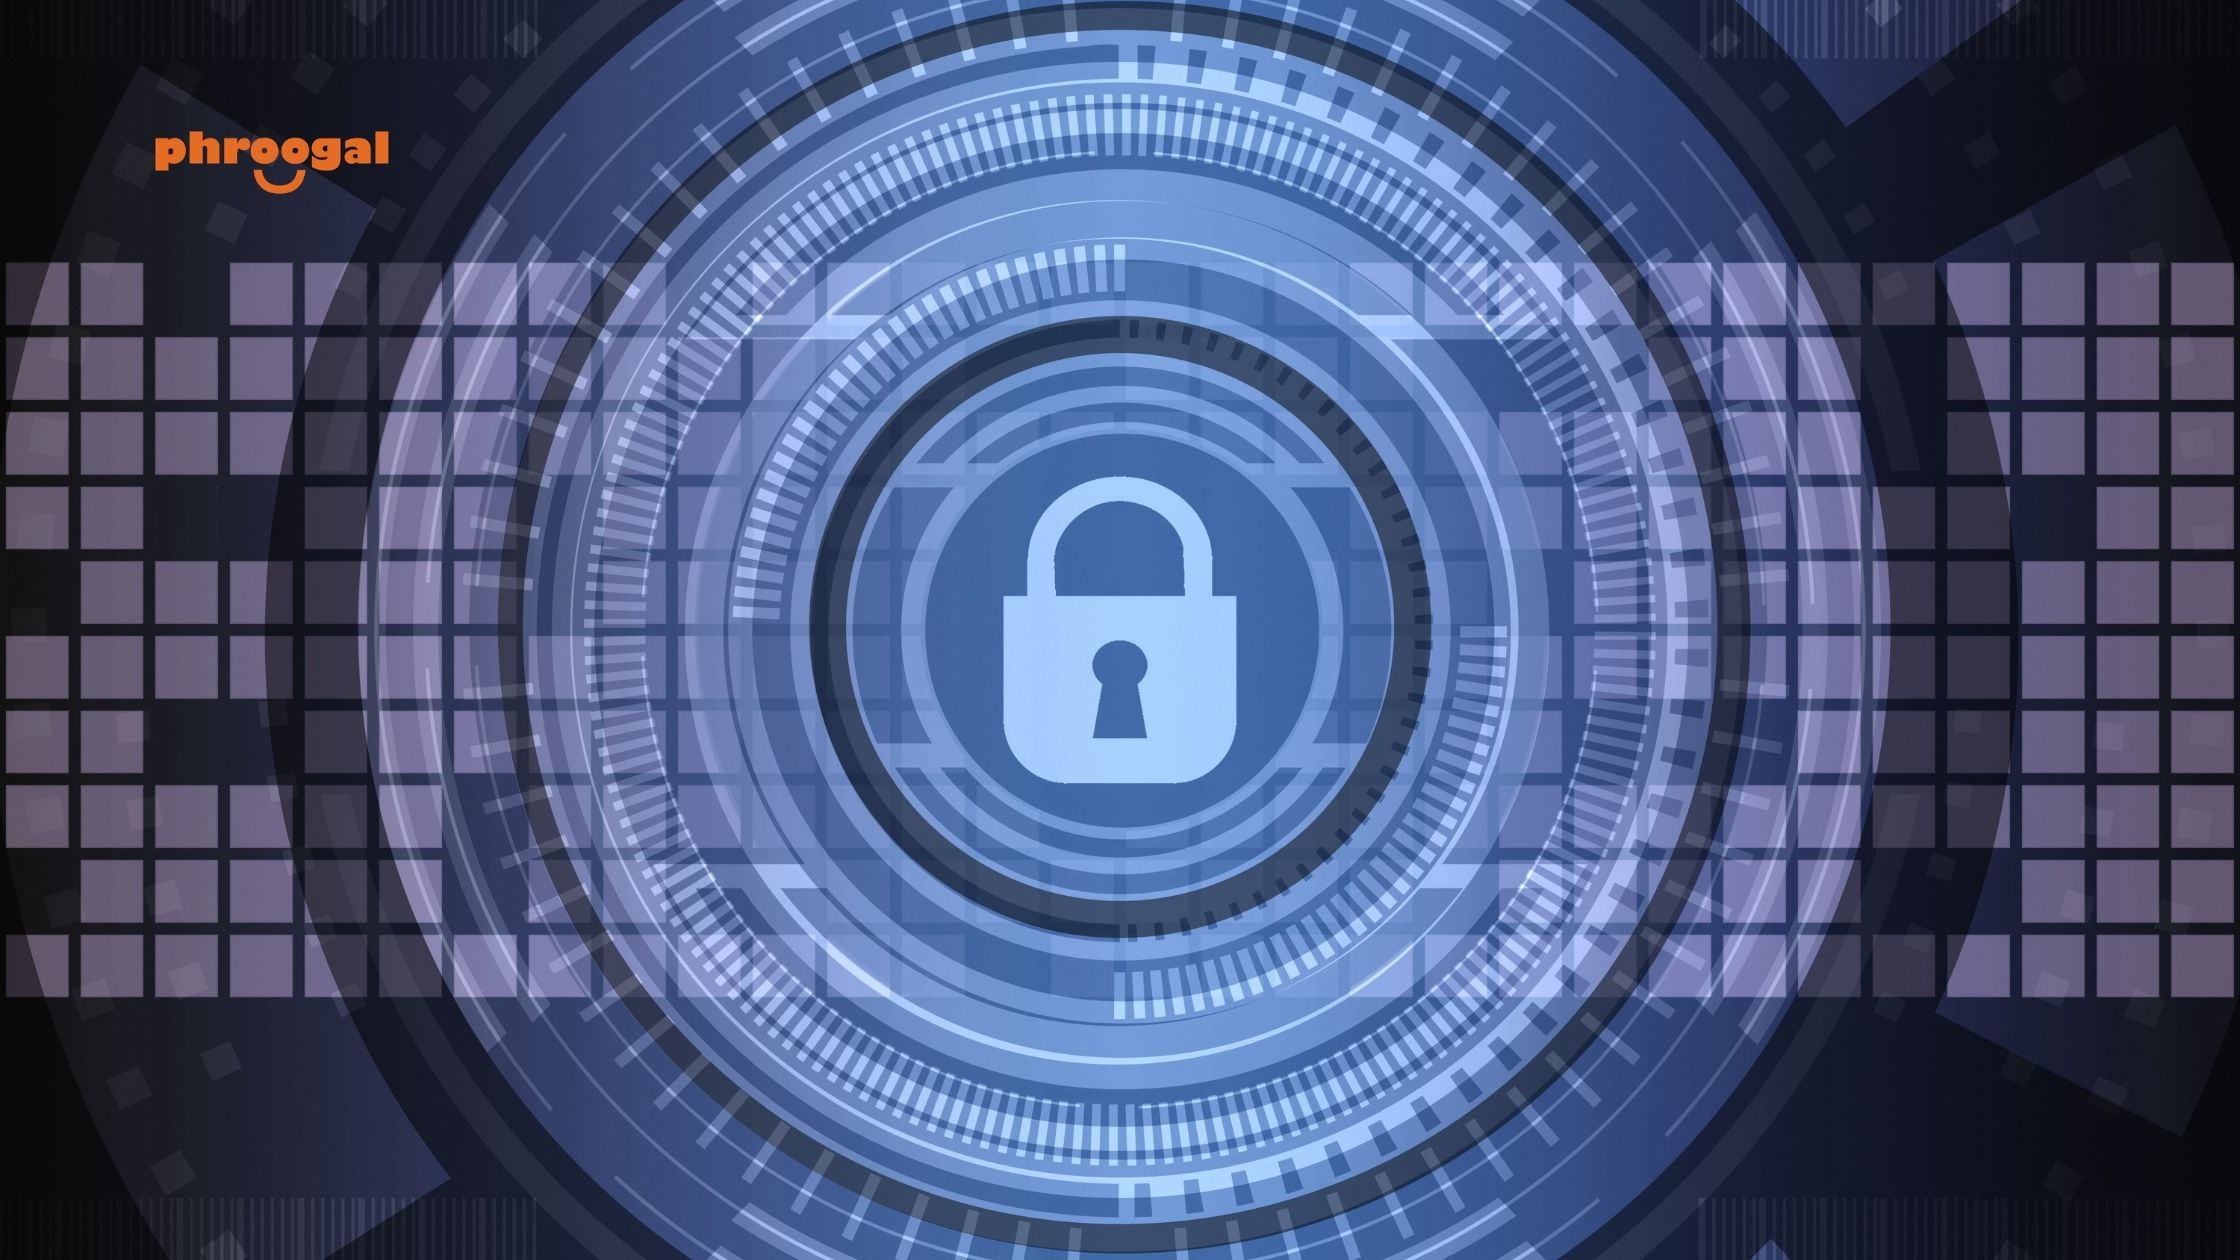 Protect Your Identity and Steps to Prevent ID Theft phroogal